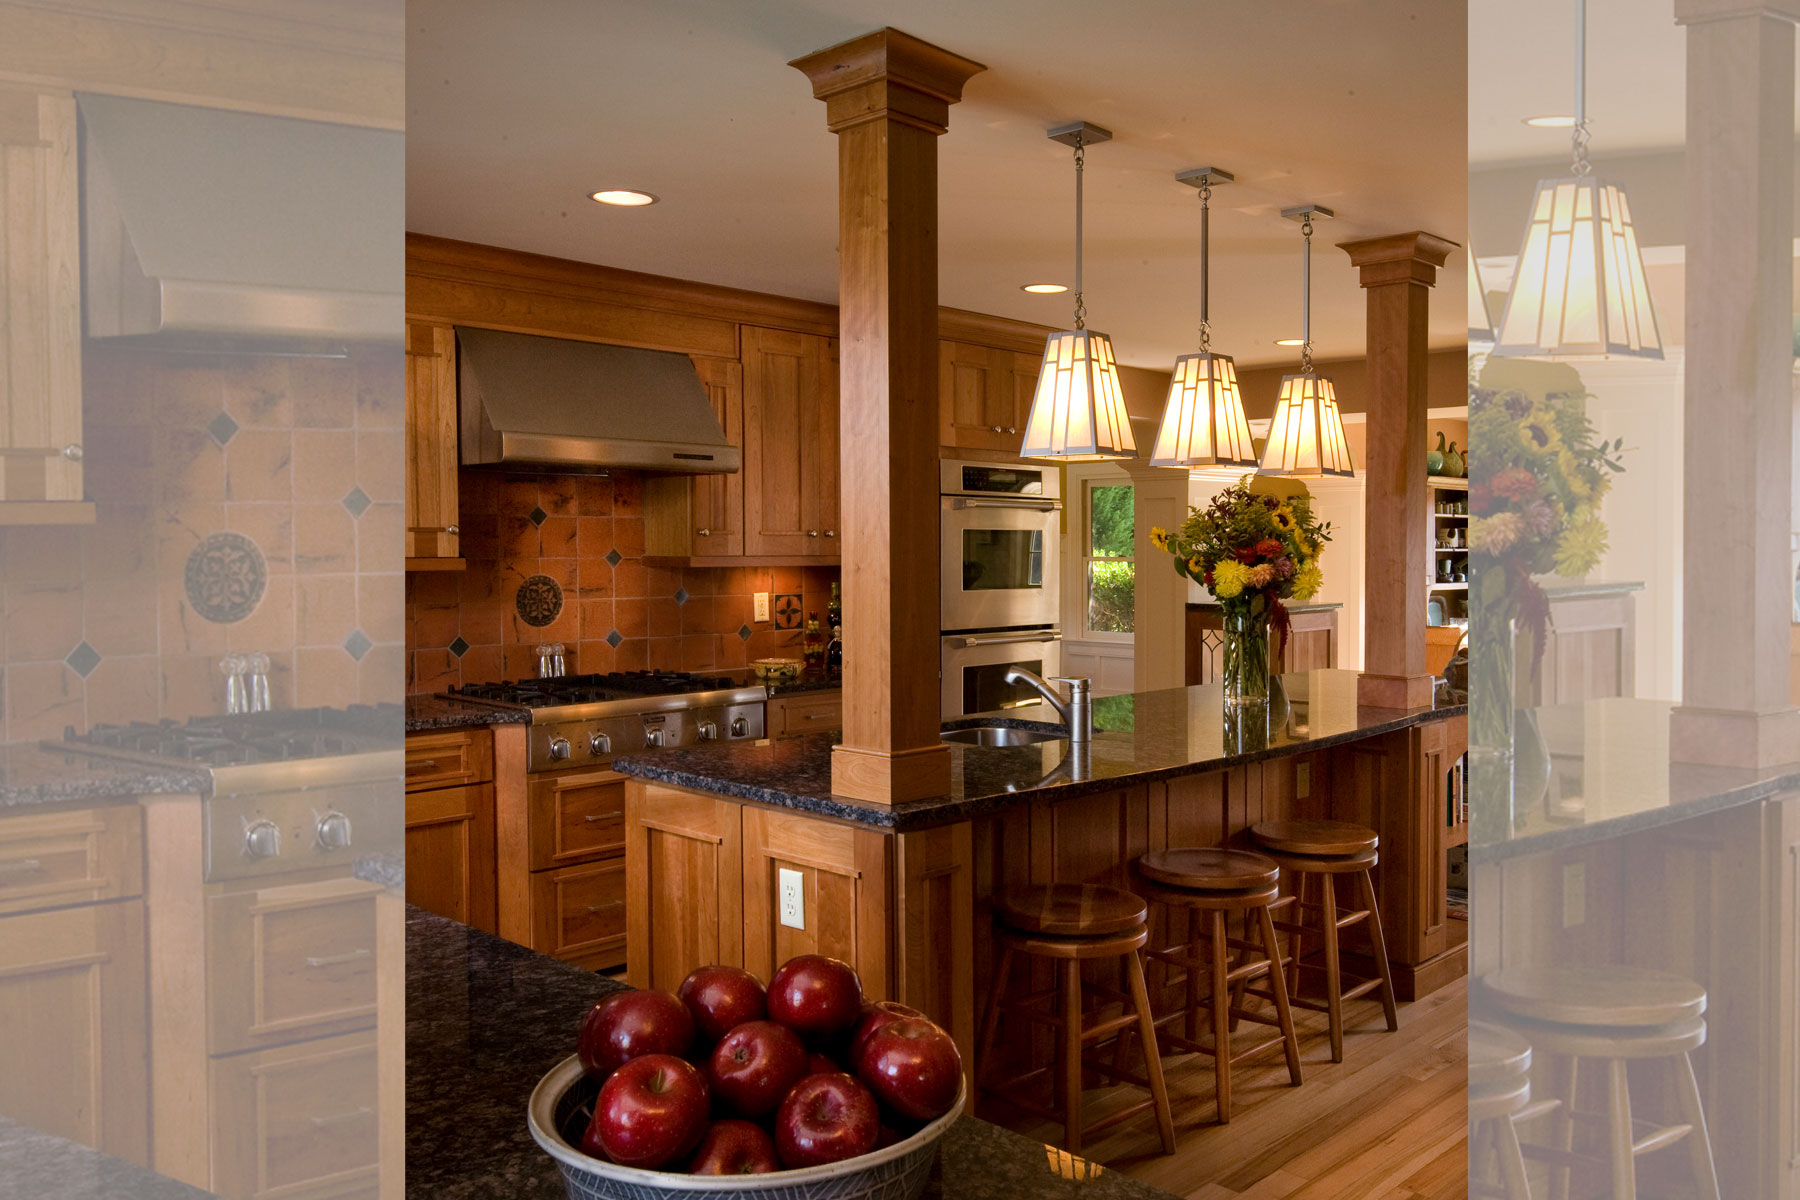 Craftsman style kitchen design for a chef